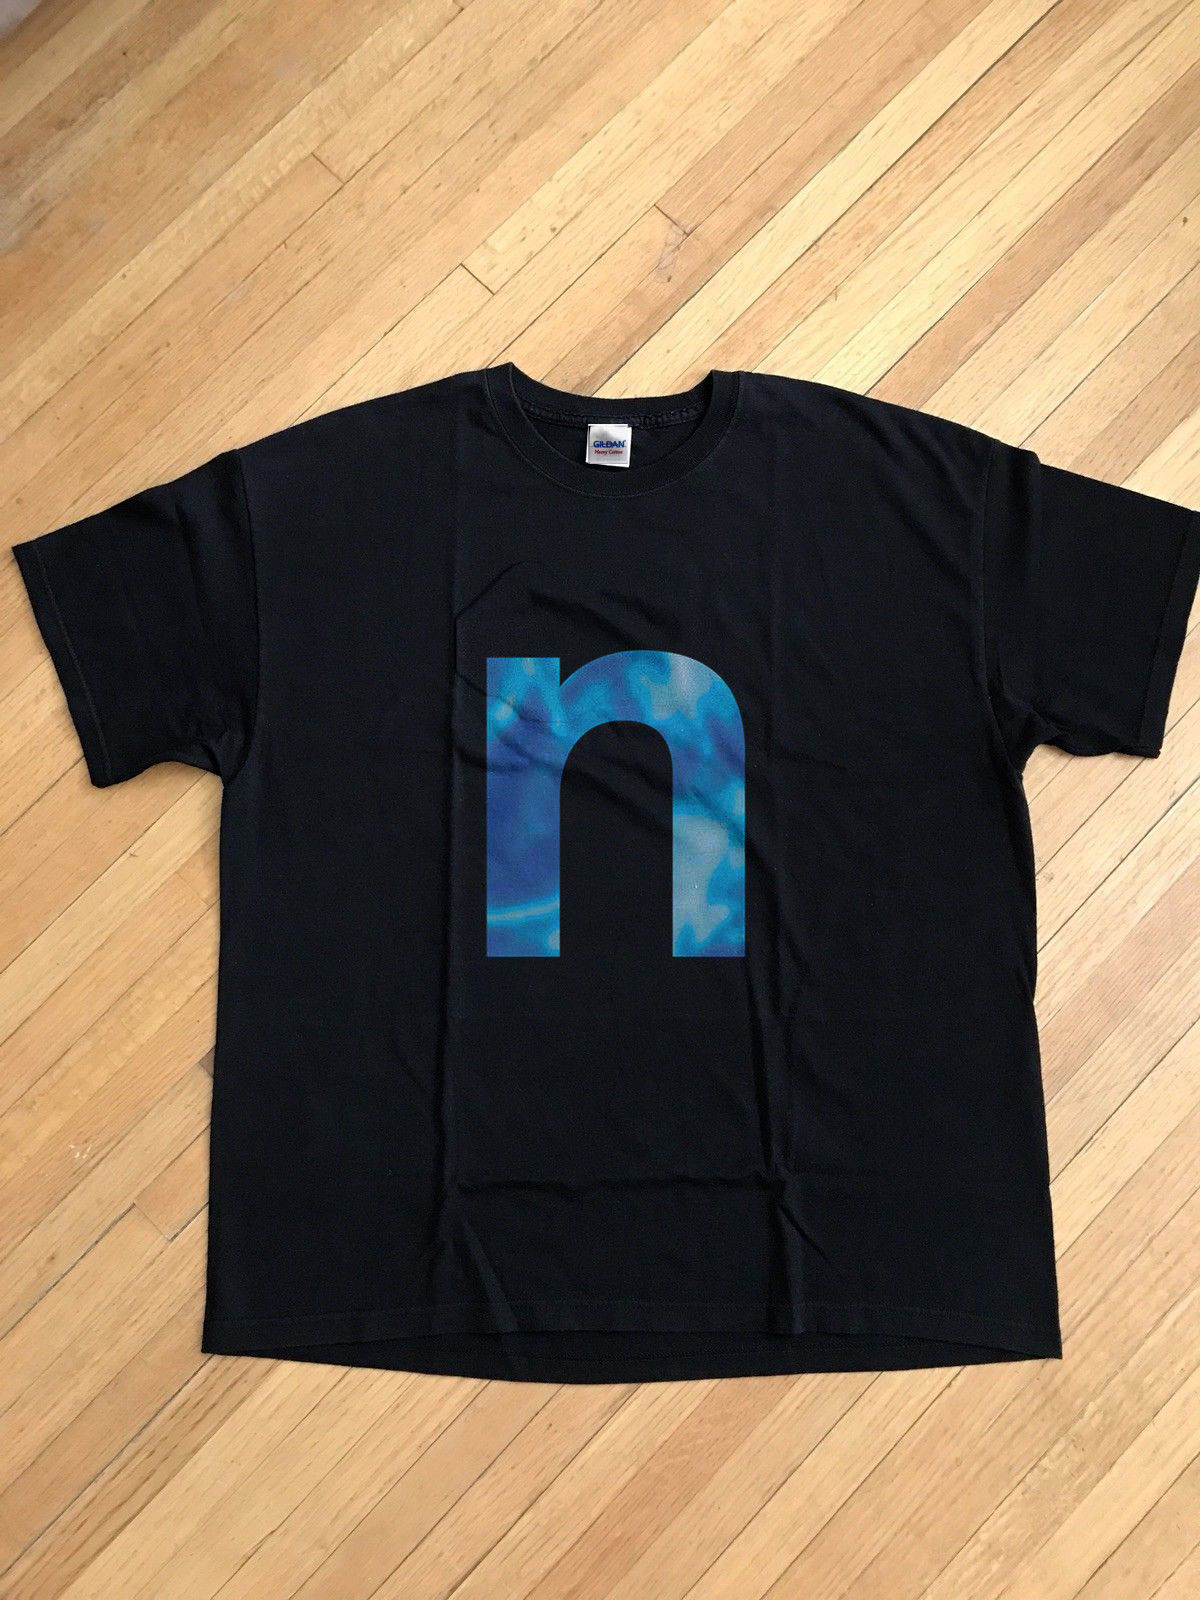 VTG 90s NIN Nine Inch Nails Fixed Skinny Puppy Rock Tour Concert T-Shirt REPRINT Mens 100% Cotton Short Sleeve Print image